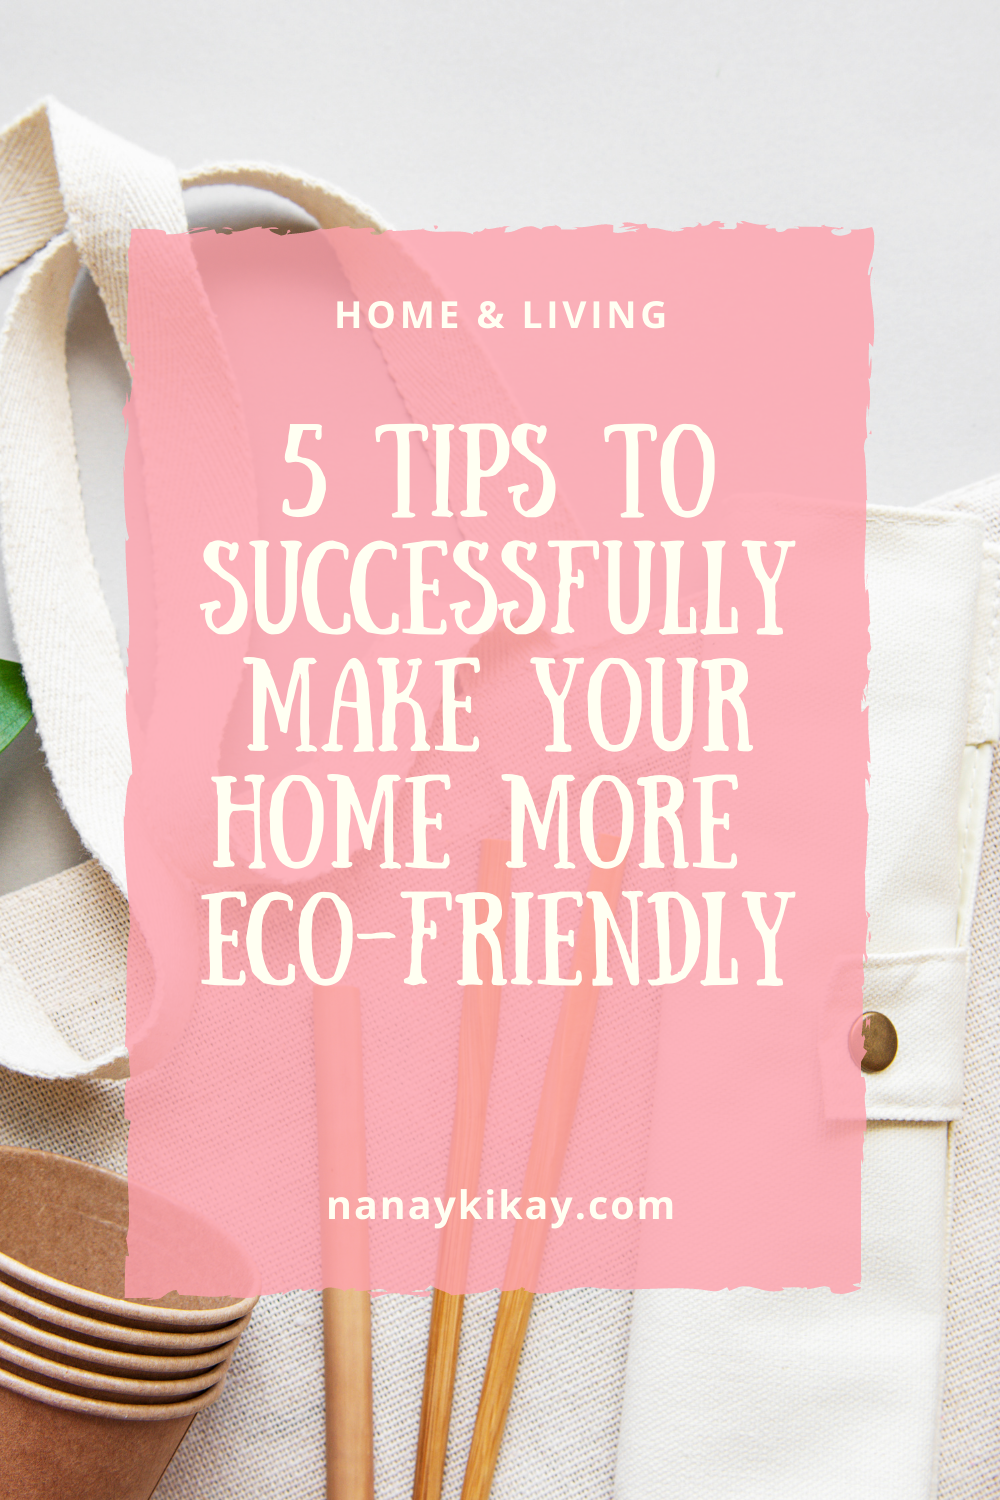 Tips to make home more eco friendly